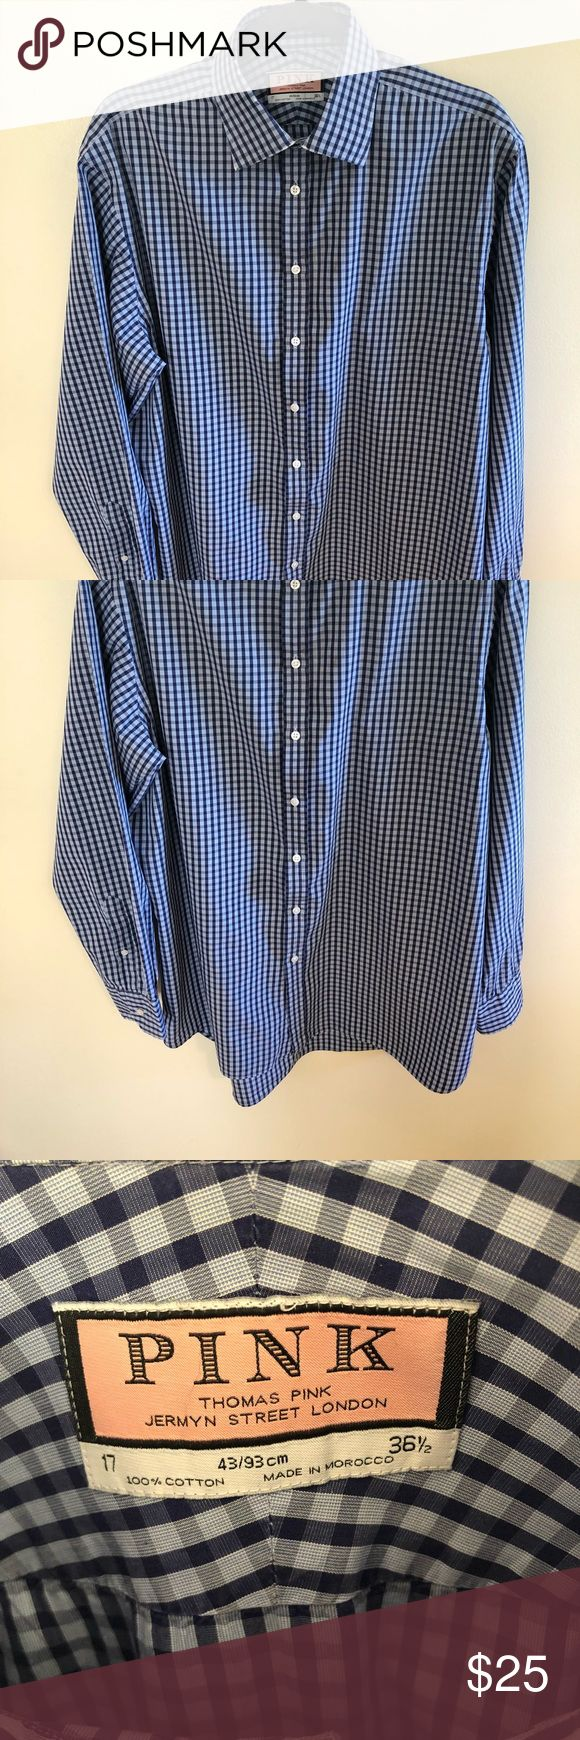 Thomas Pink blue checkered 17 shirt Size: 17           43/93 cm          36 1/2 Blue checkered shirt in excellent condition. Minor flaws shown in pictures- a bit worn around collar and cuff, not noticeable unless putting shirt right up to eye Thomas Pink Shirts Dress Shirts